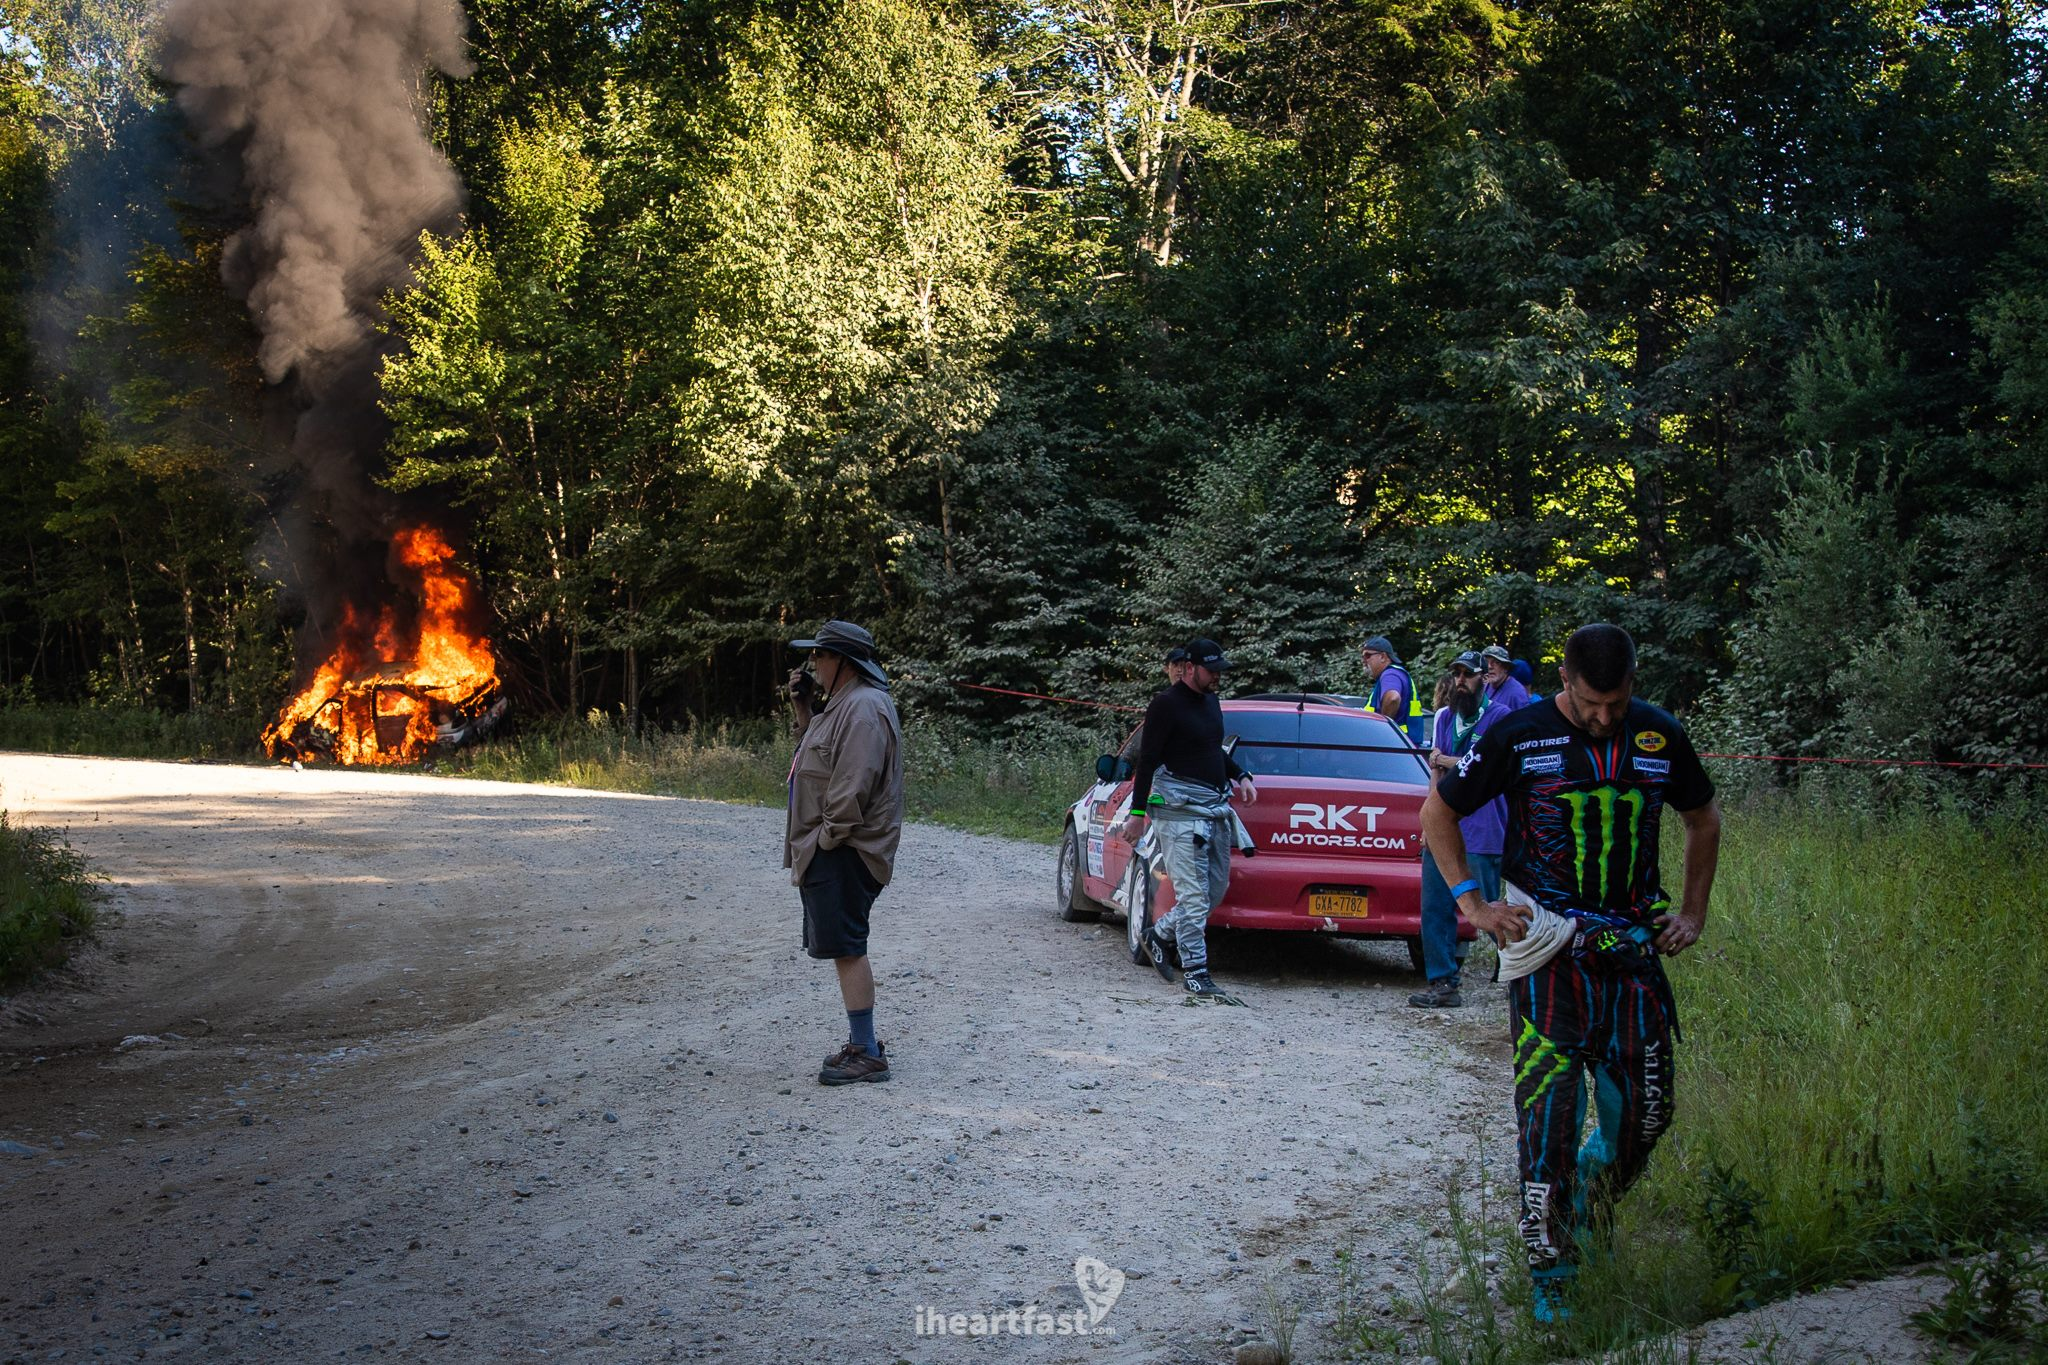 Ken Block walks away from his burning car with his head down, defeated.